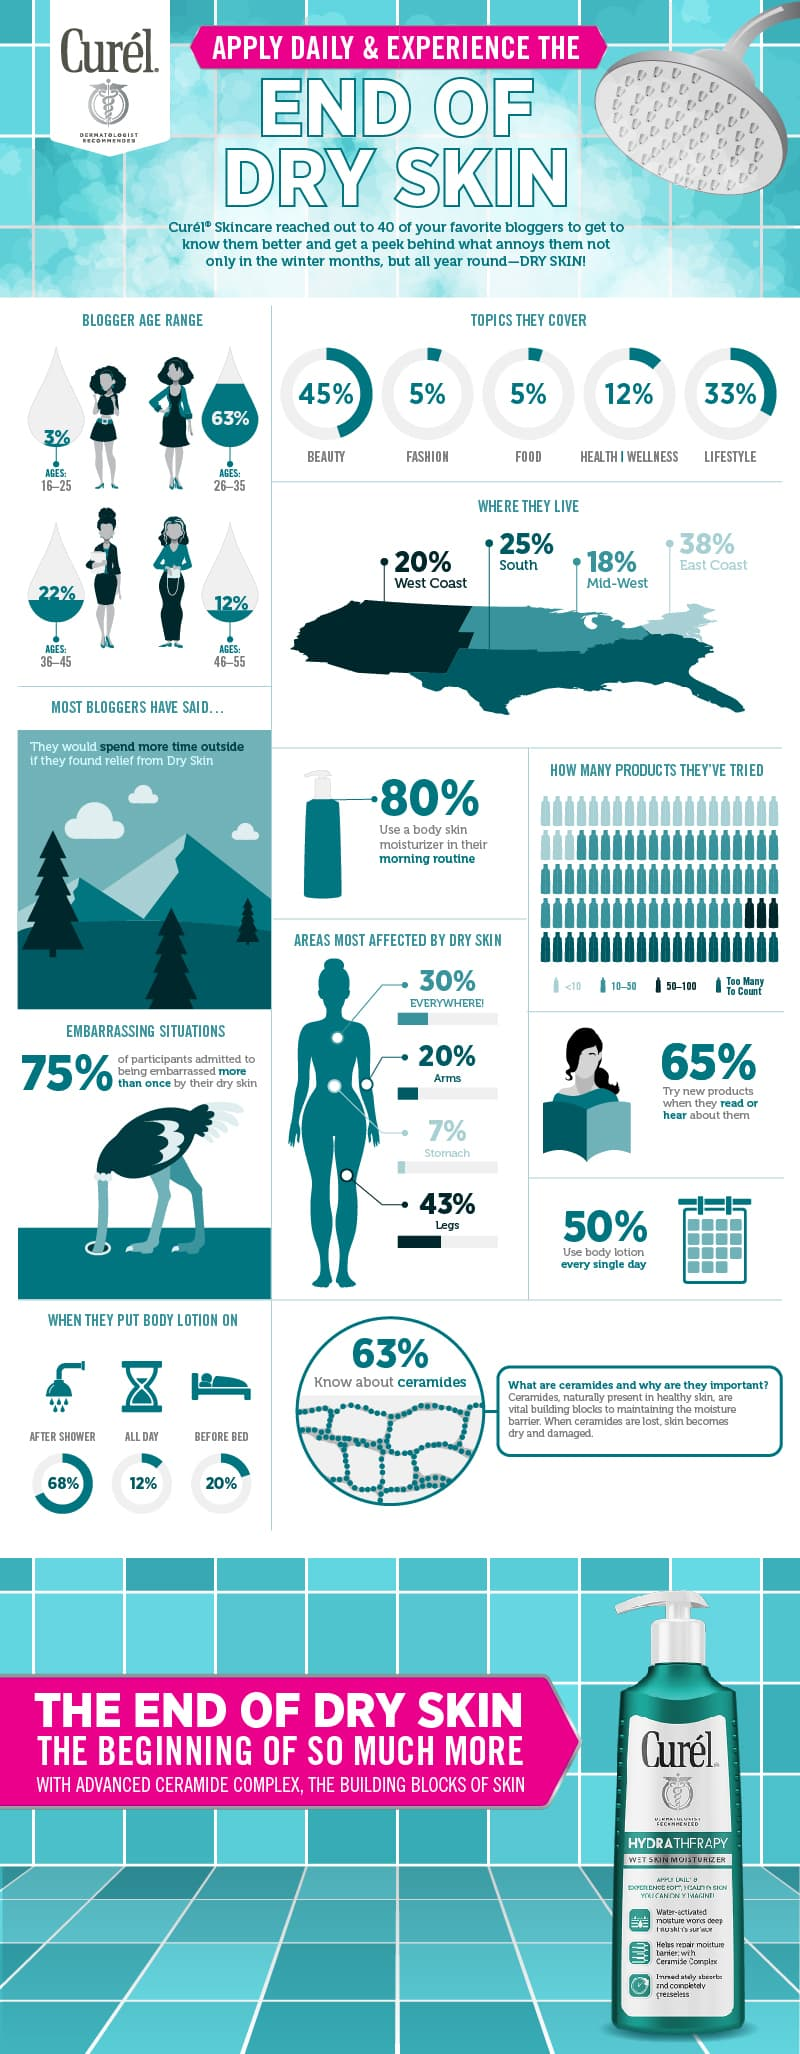 an infographic from Curel about the end of dry skin